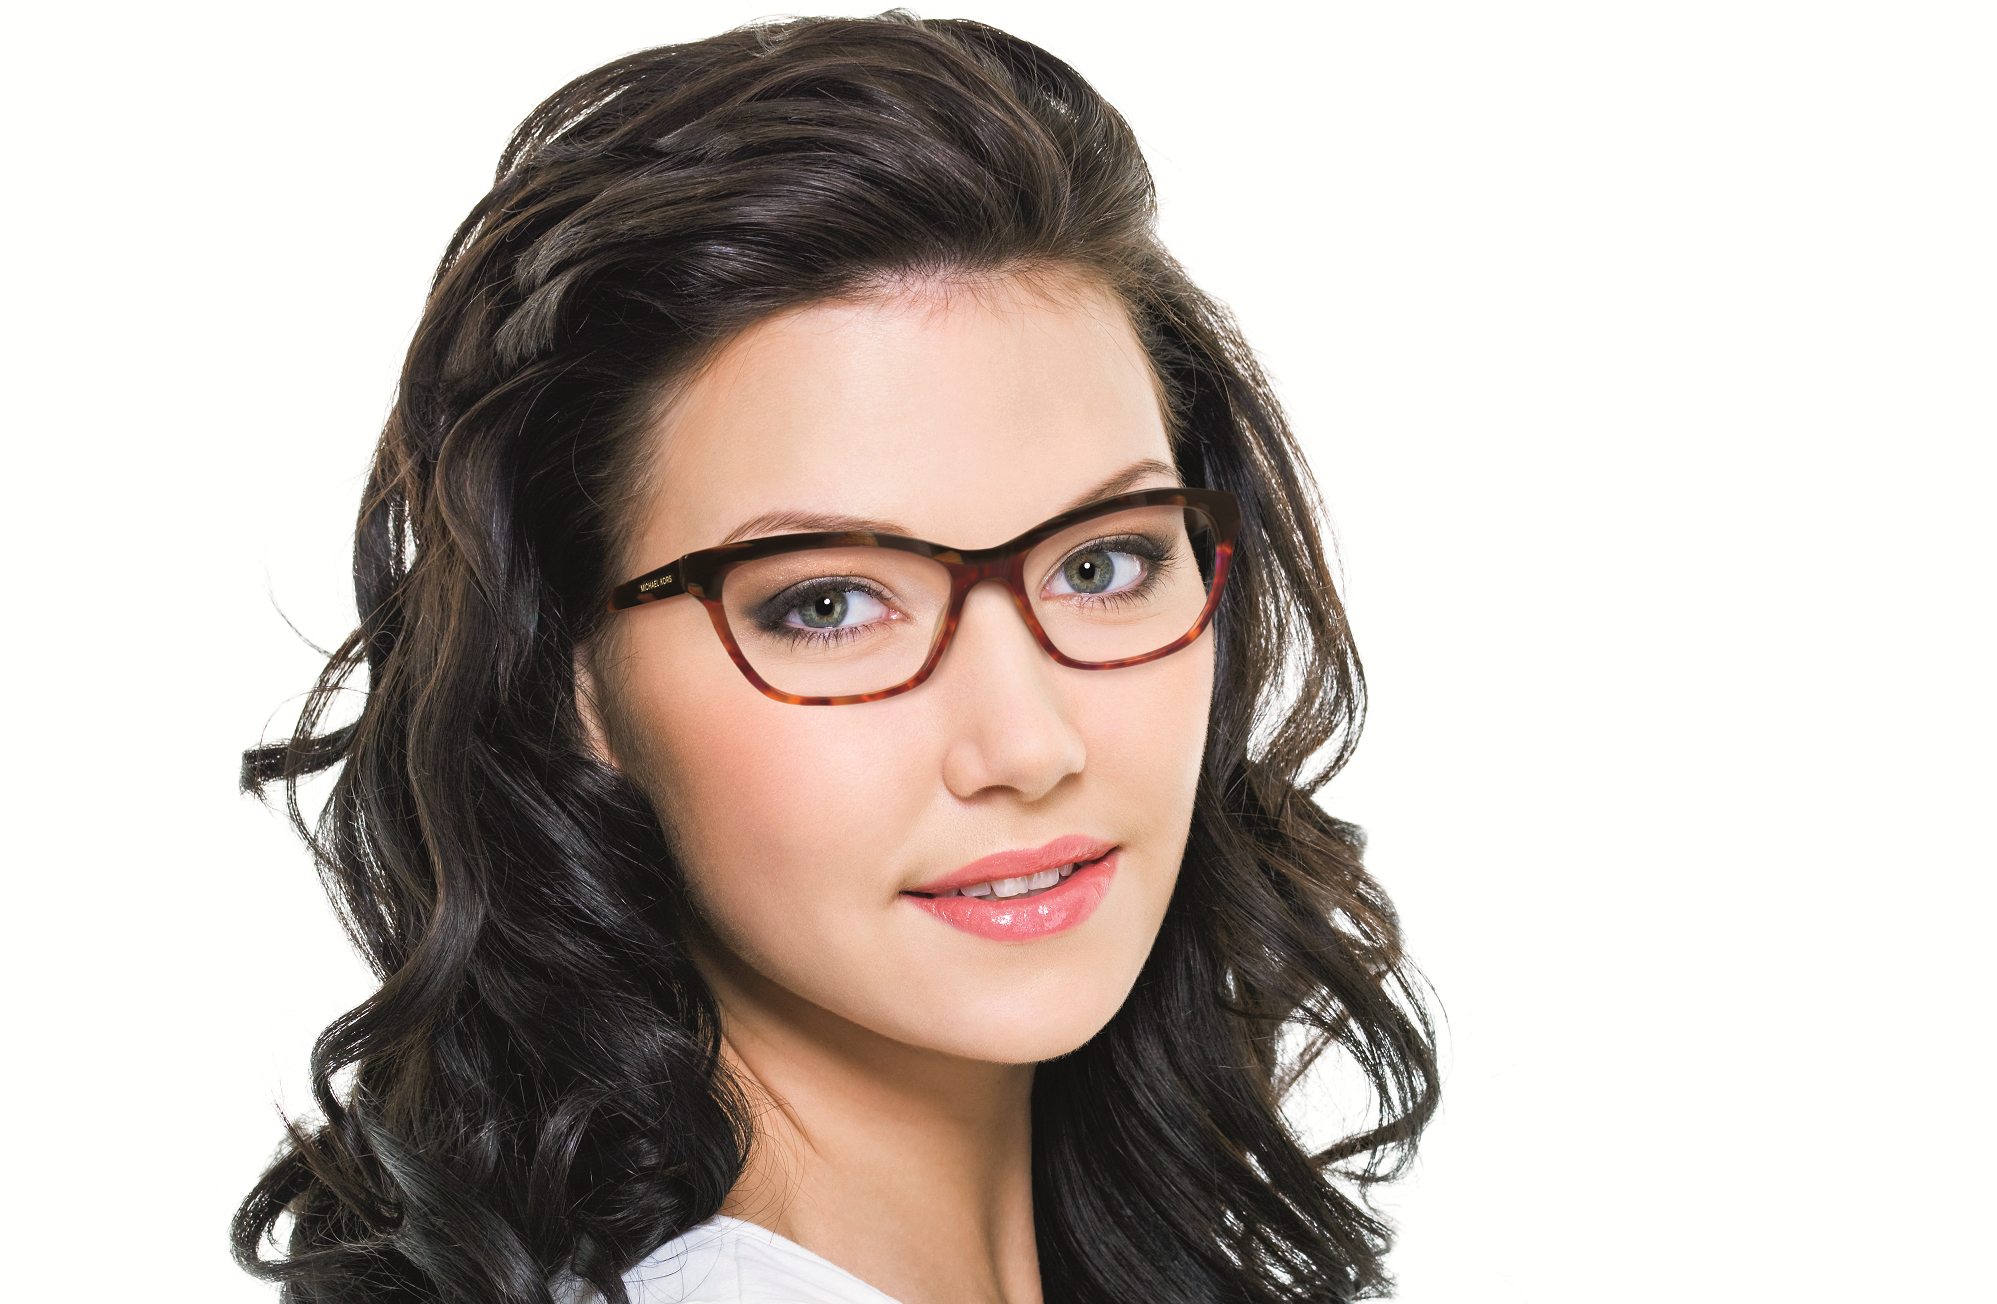 designer eyeglasses 2015  designer frames Archives - My Best Eyeglasses